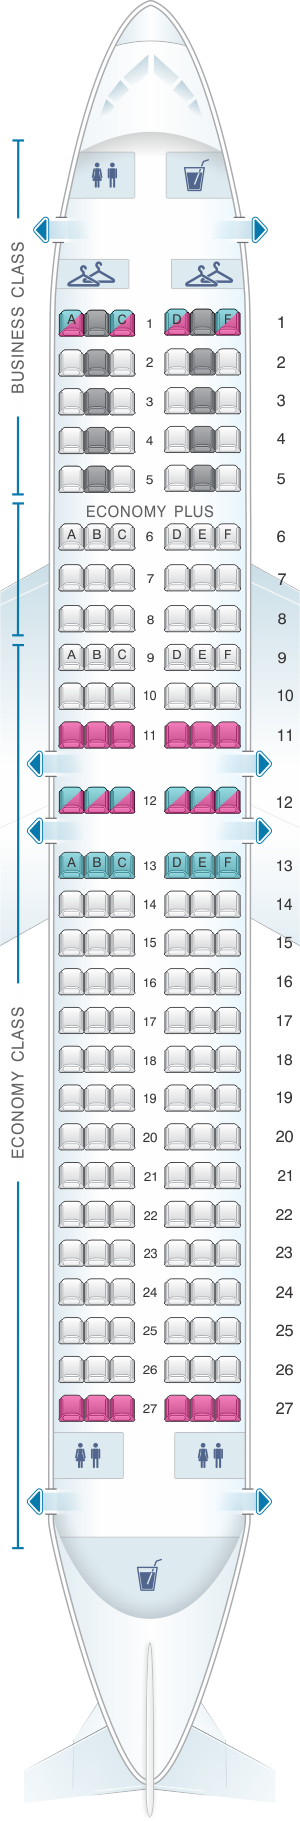 Seat map for LOT Polish Airlines Boeing B737 400